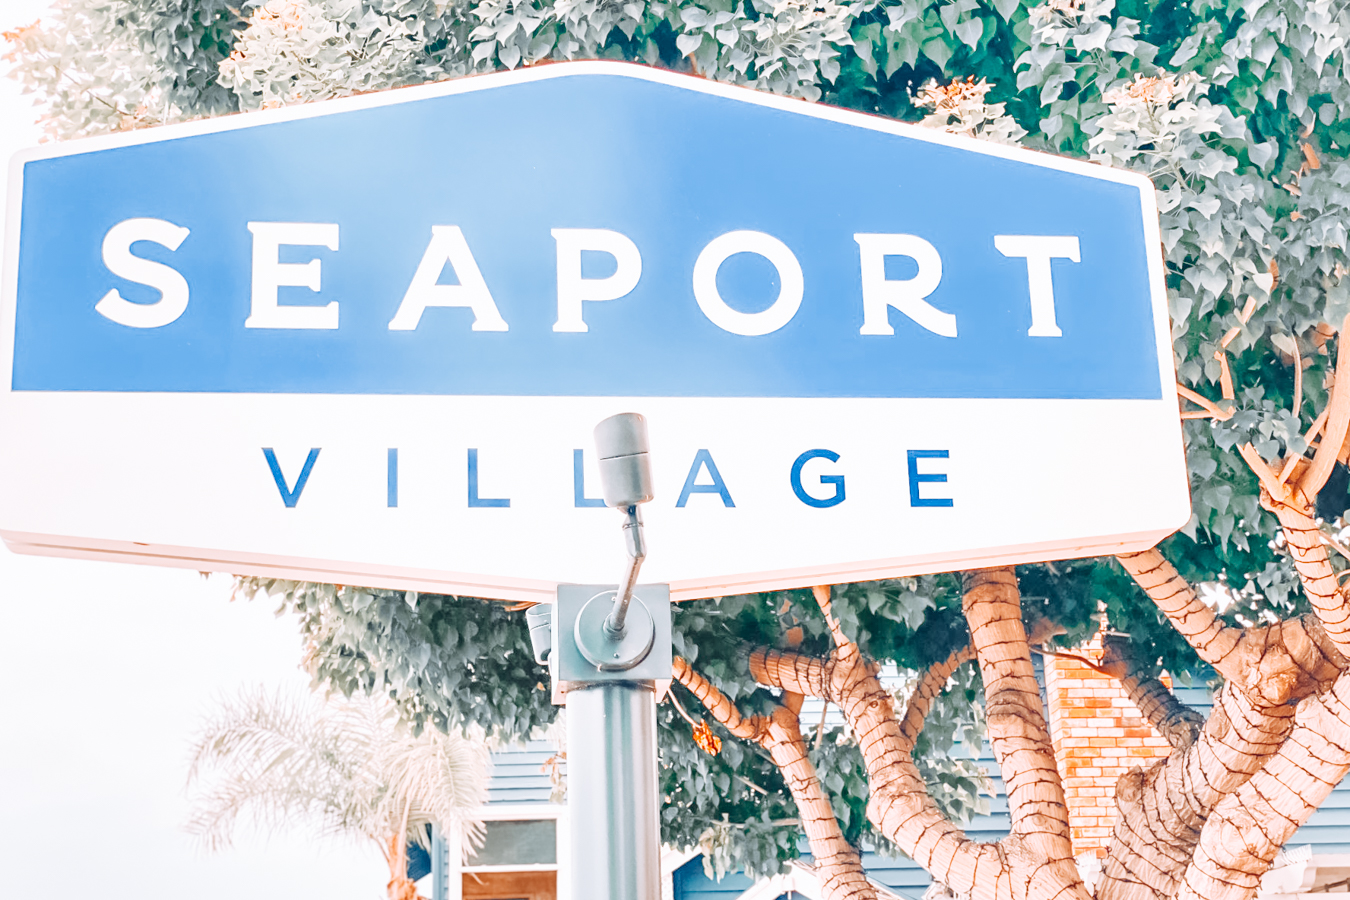 Sign of Seaport Village